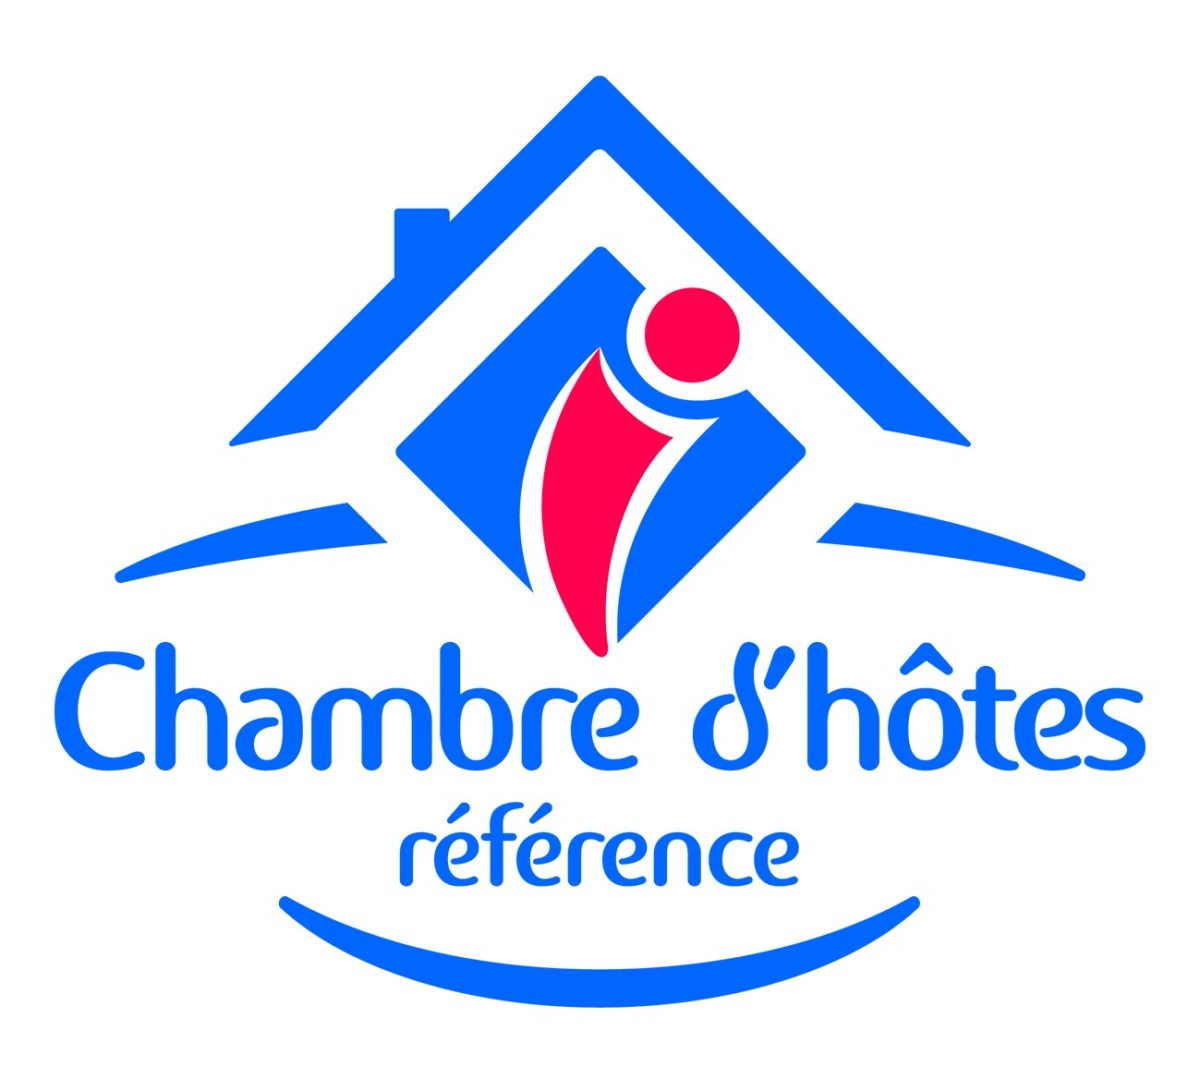 Logo-Chambre-d-ho-tes-rCfCrence